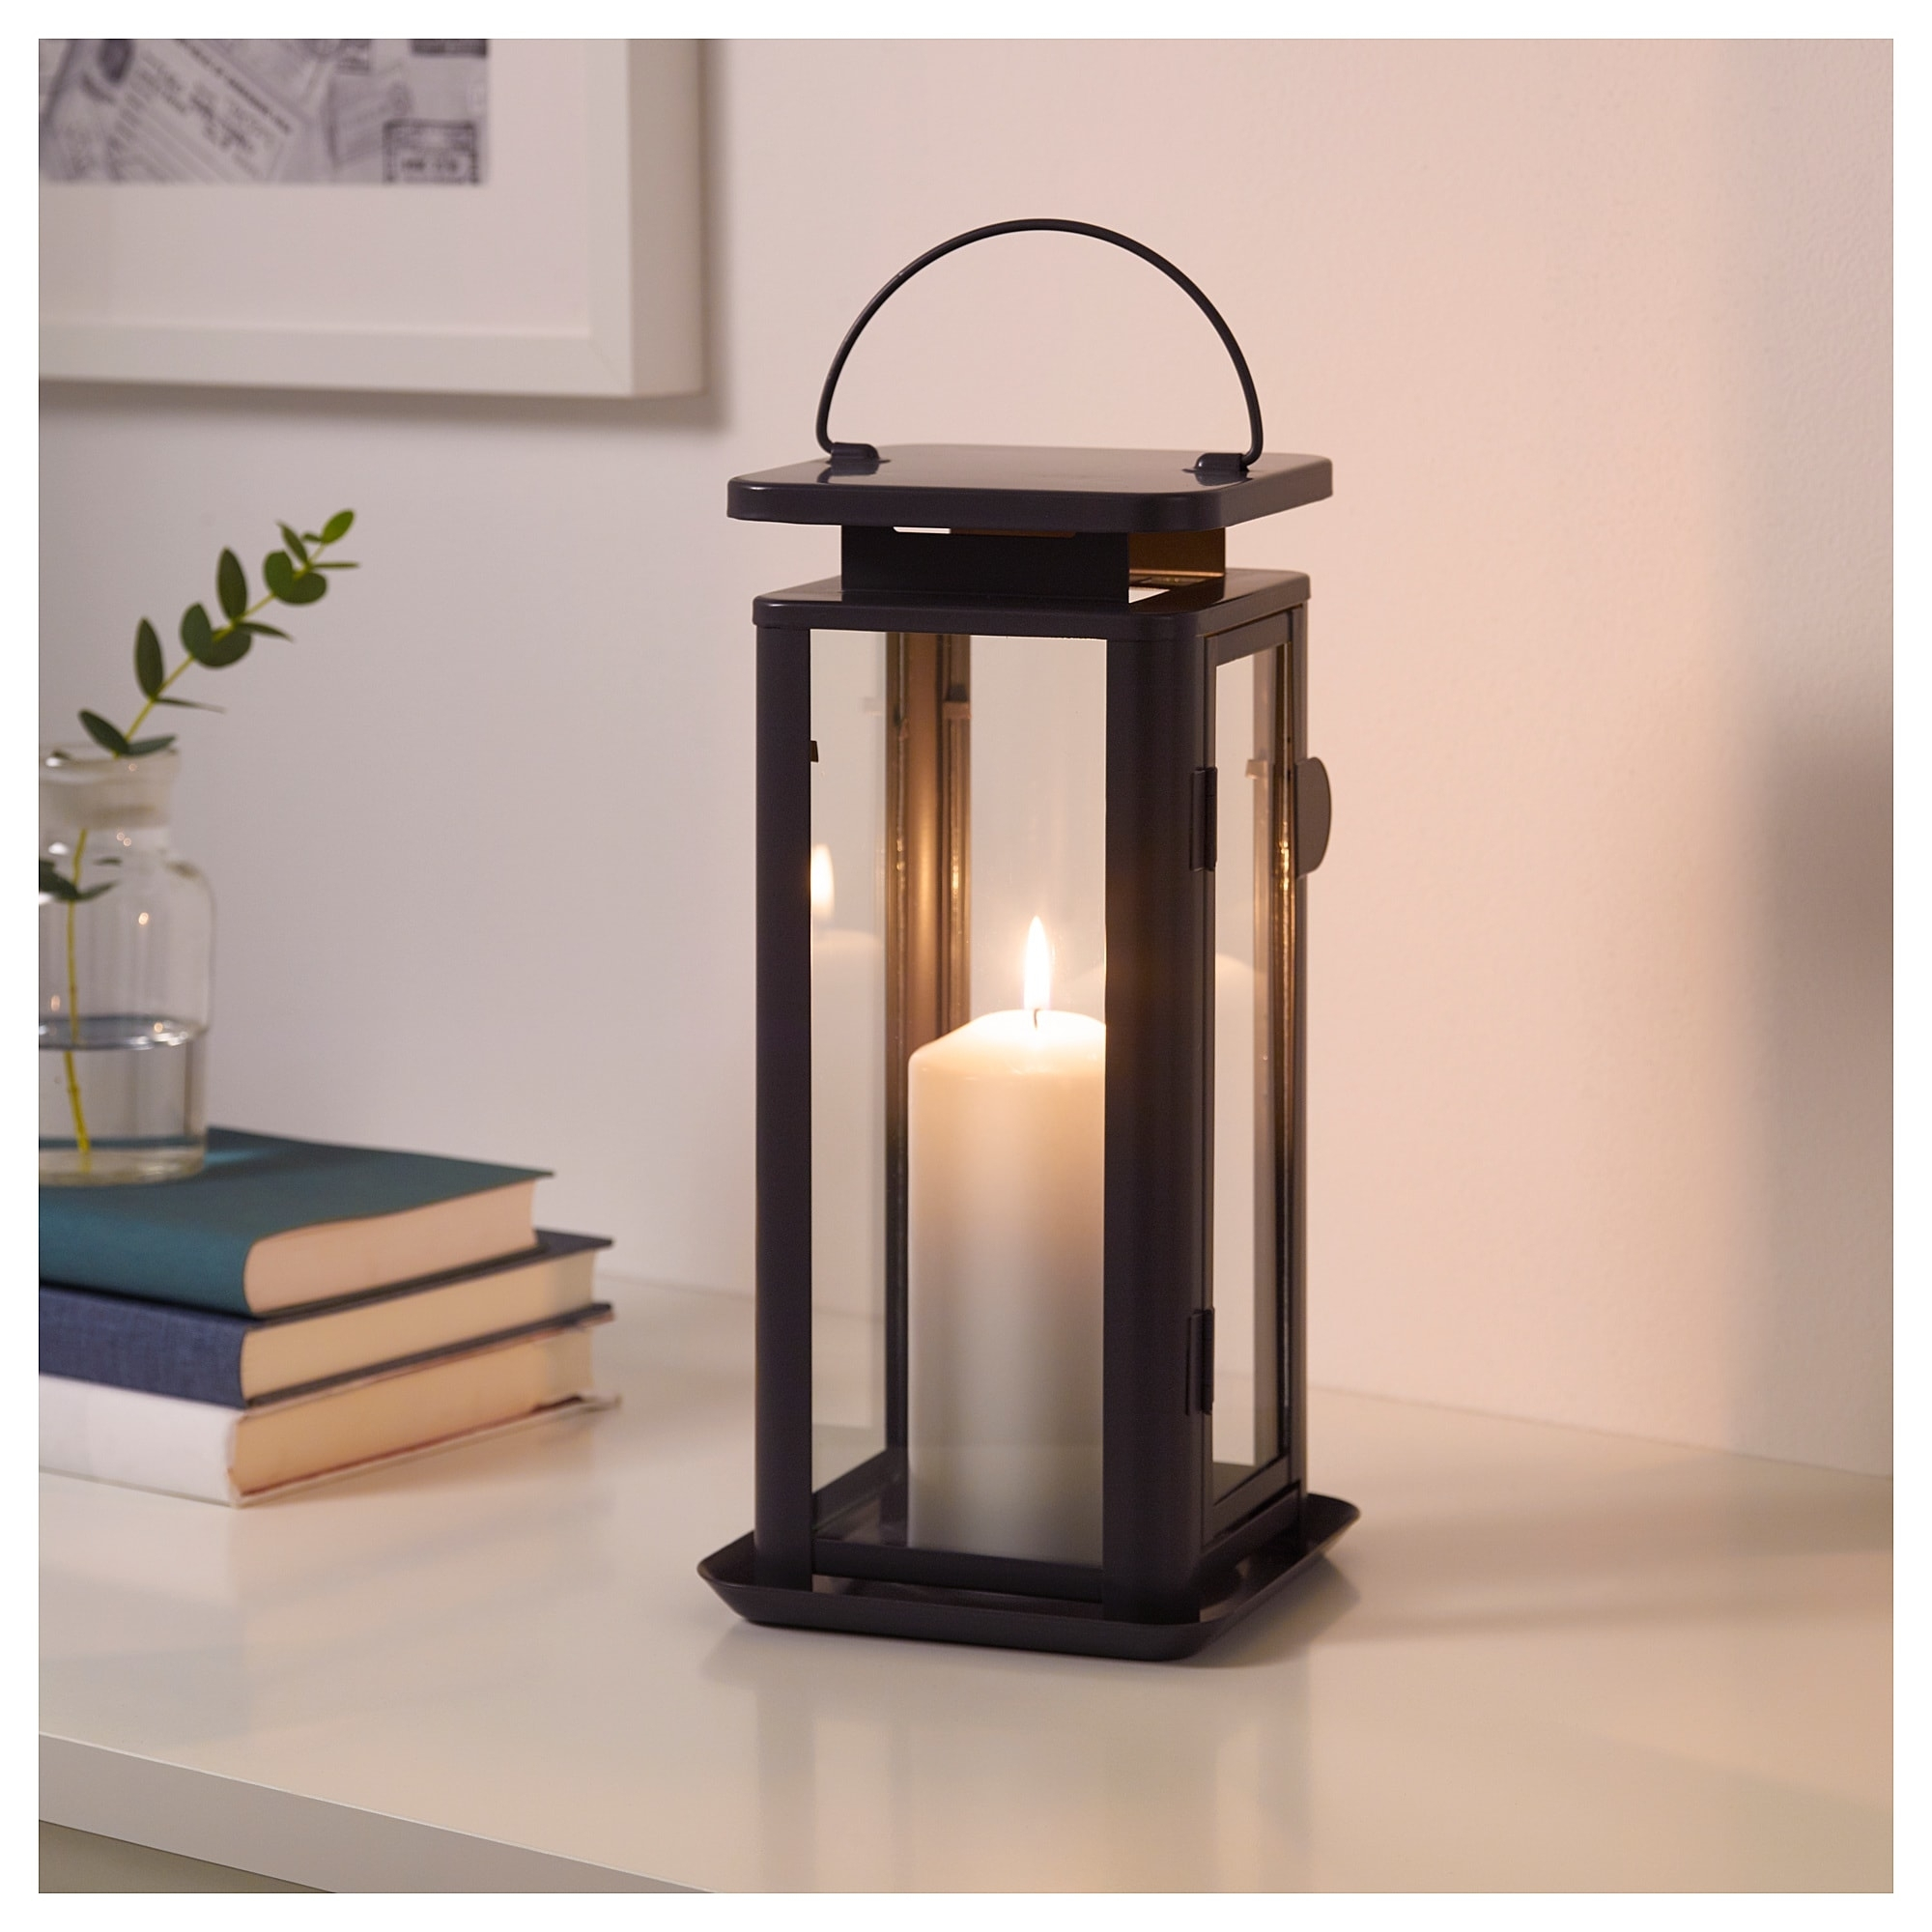 Sinnesro Lantern F Block Candle, In/outdoor Grey 29 Cm - Ikea intended for Outdoor Grey Lanterns (Image 17 of 20)